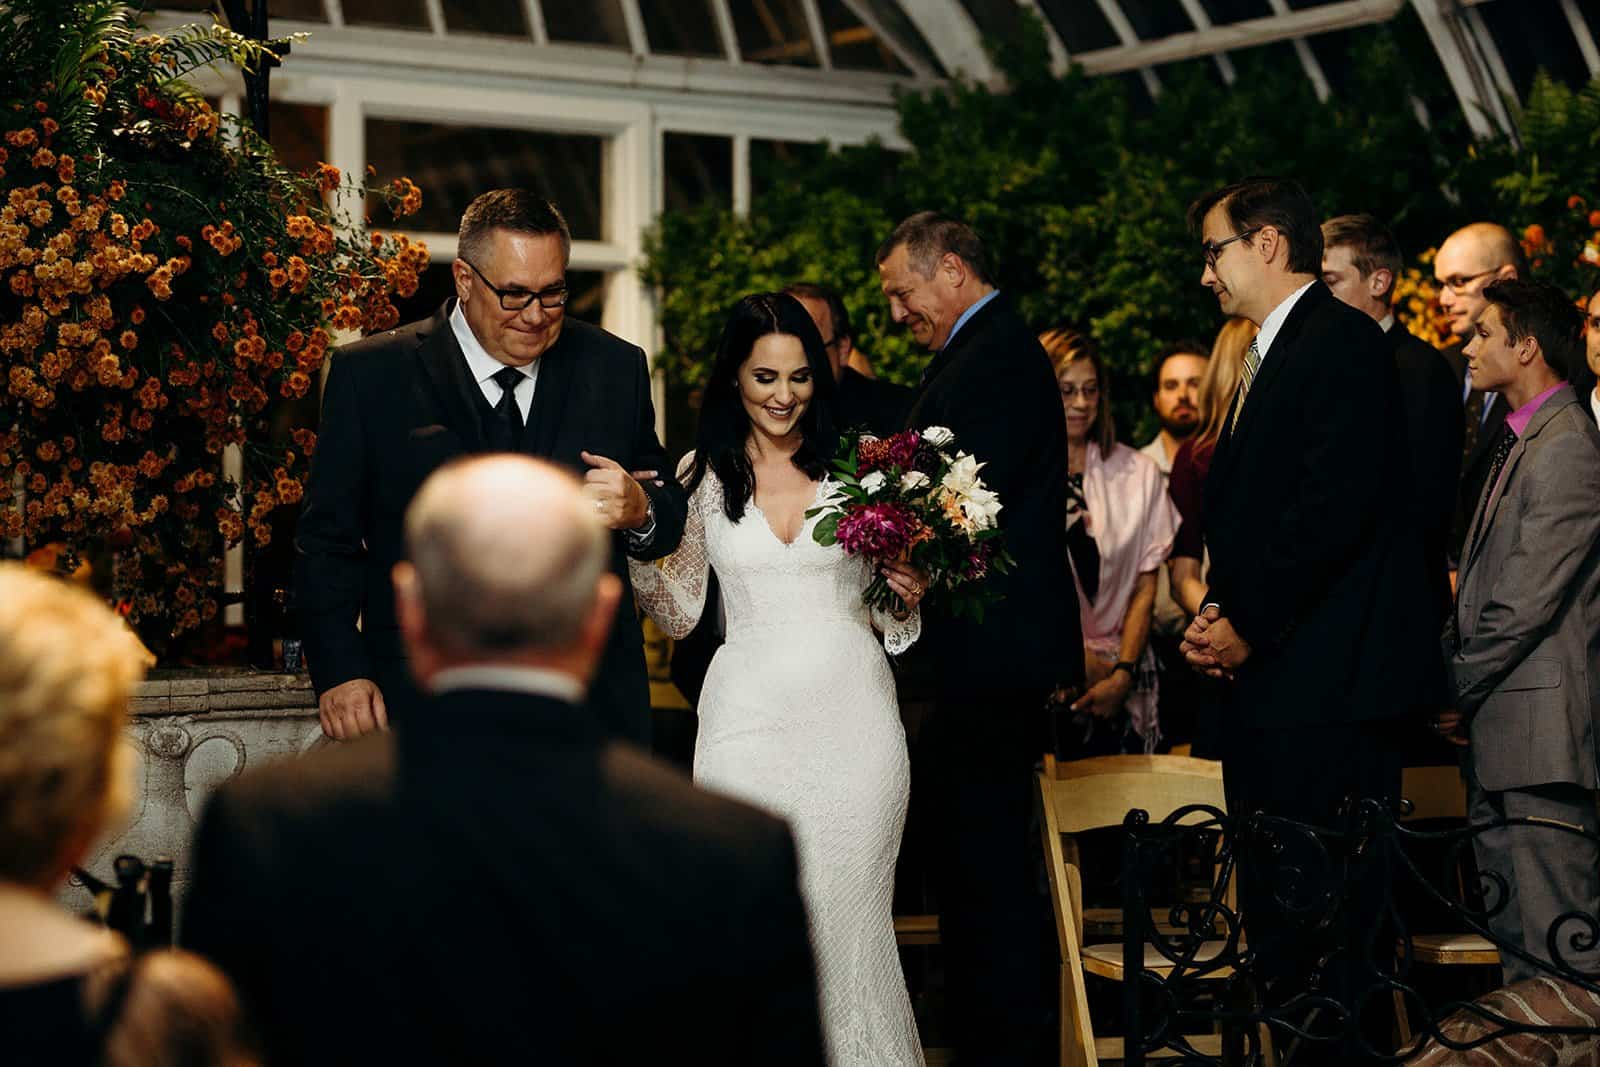 father escorting bride during wedding